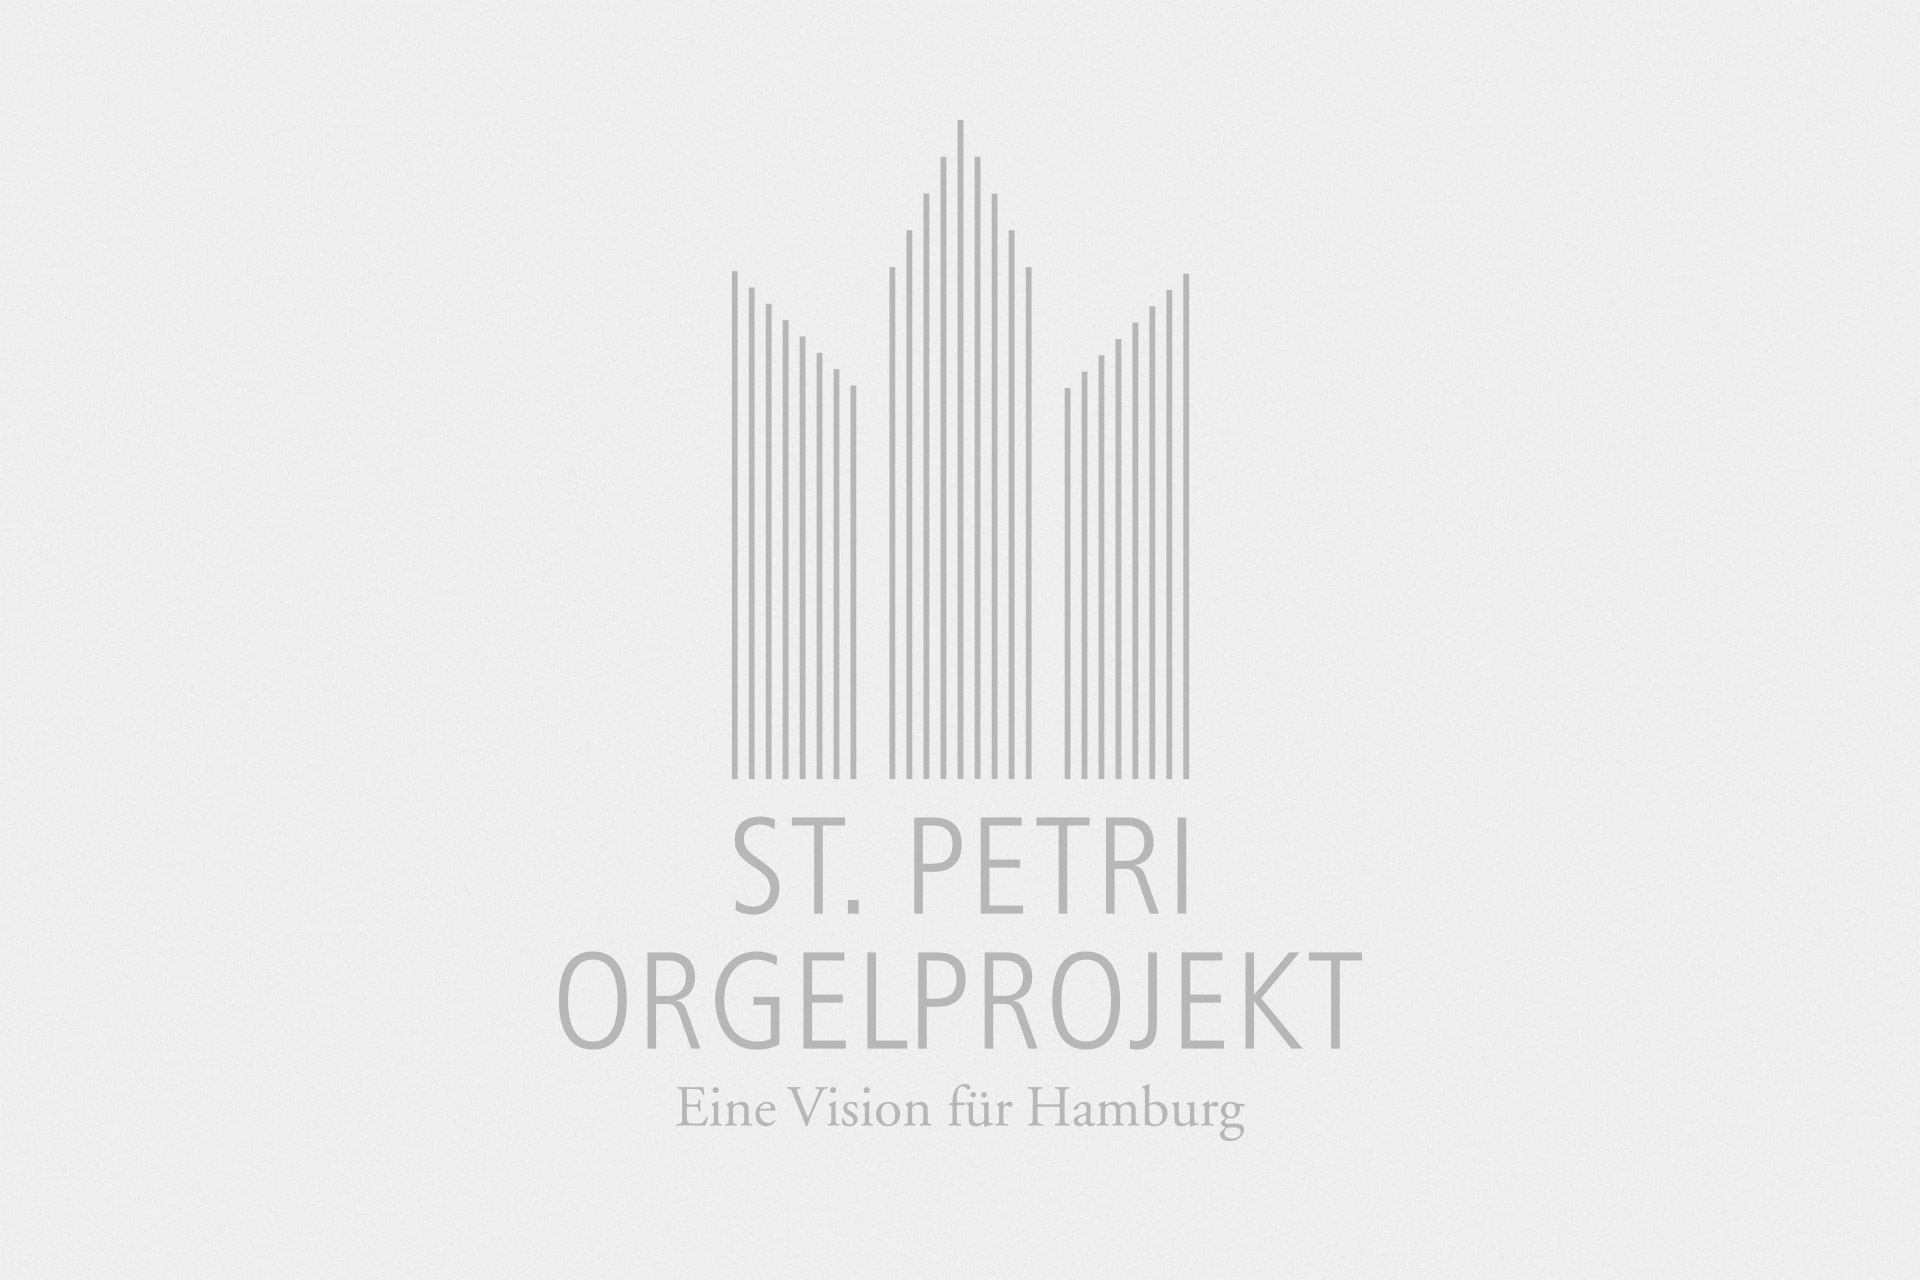 orgelprojekt-corporate-design logo design